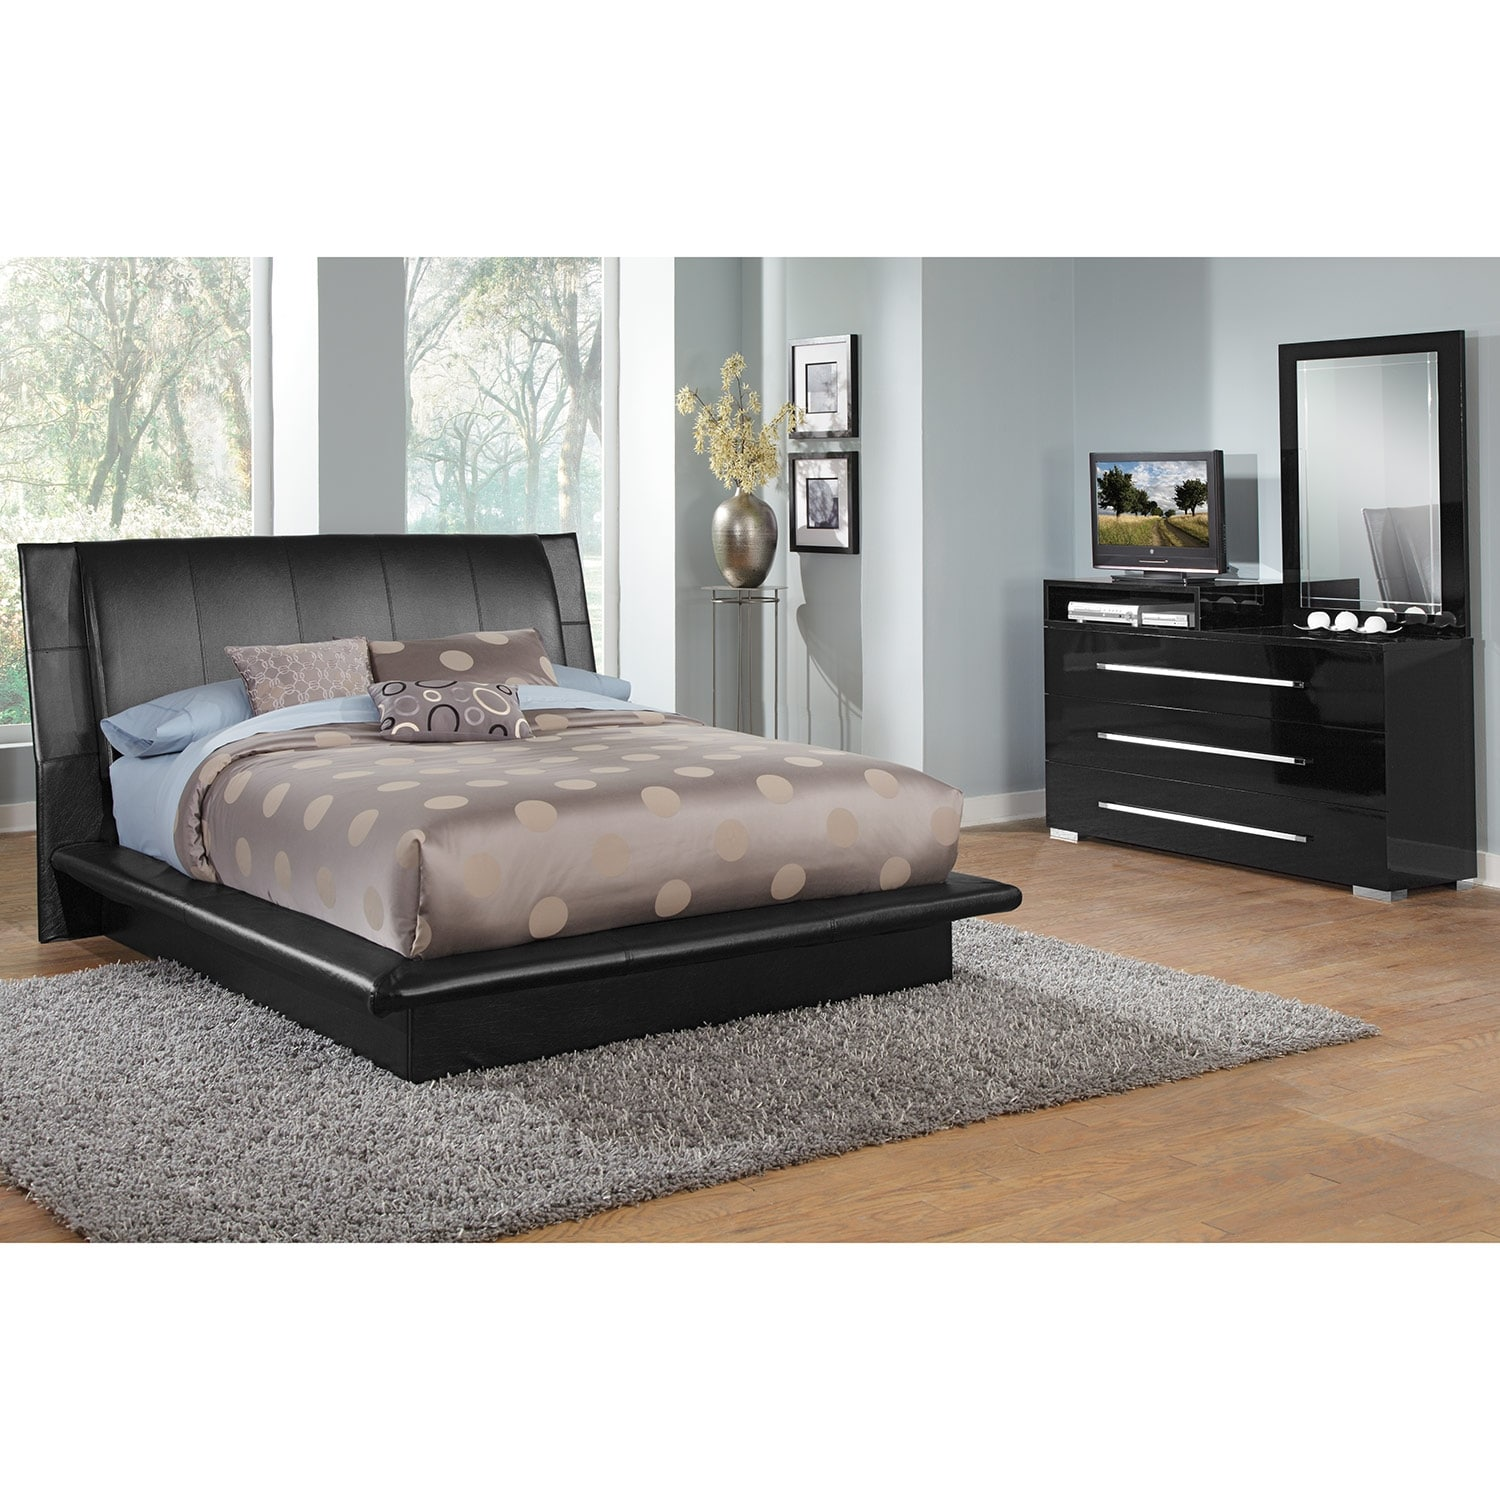 Dimora 5-Piece King Upholstered Bedroom Set with Media Dresser - Black